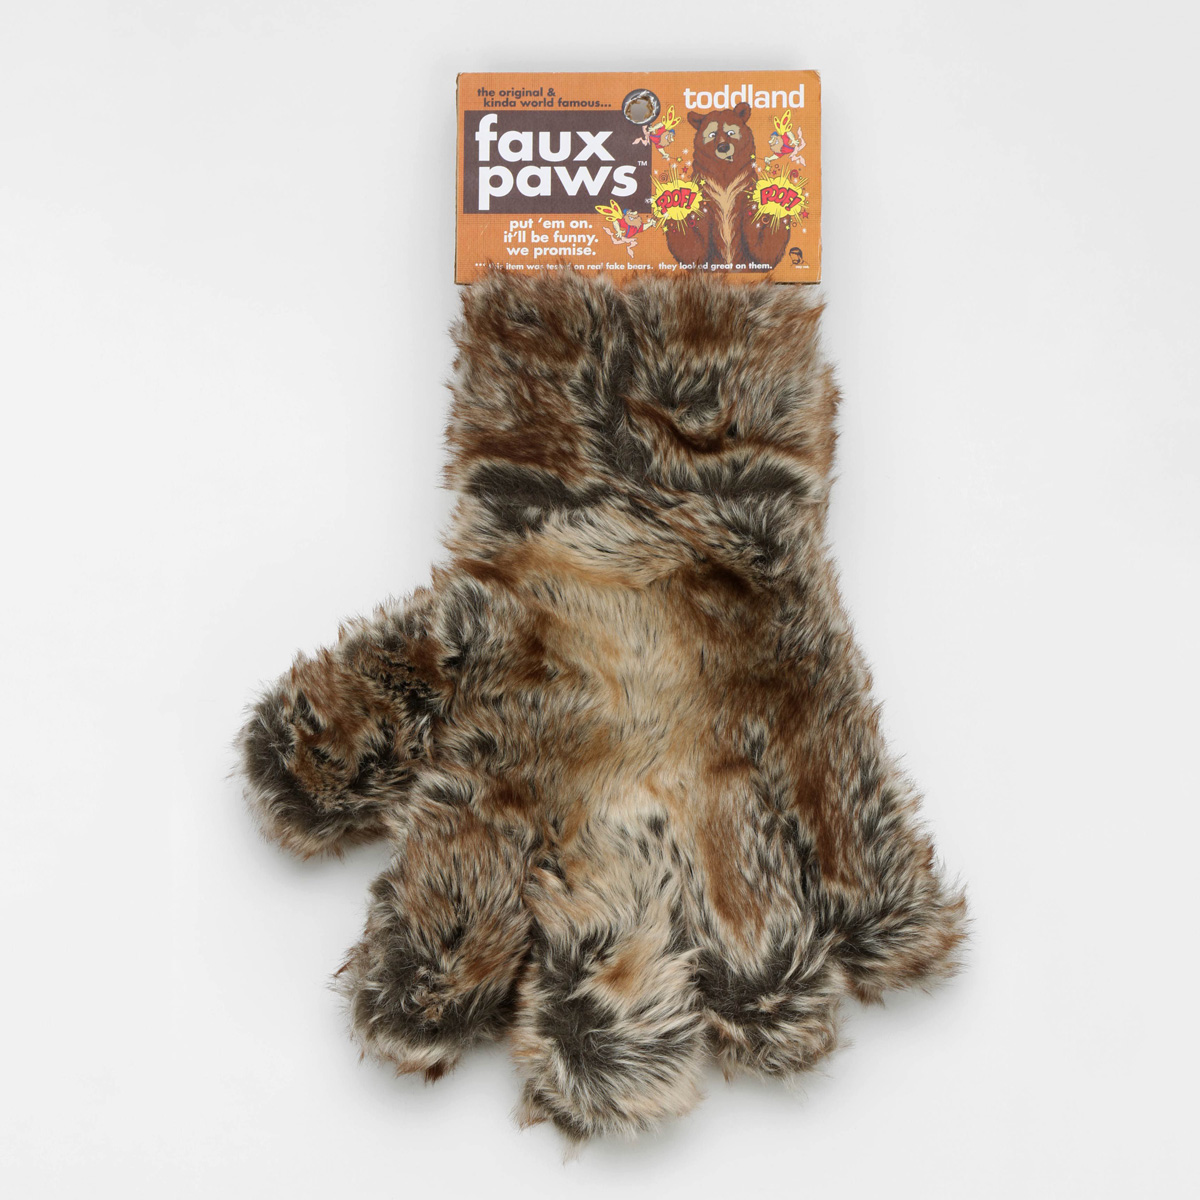 Faux Paws Giant Wearable Furry Bear Paws The Green Head